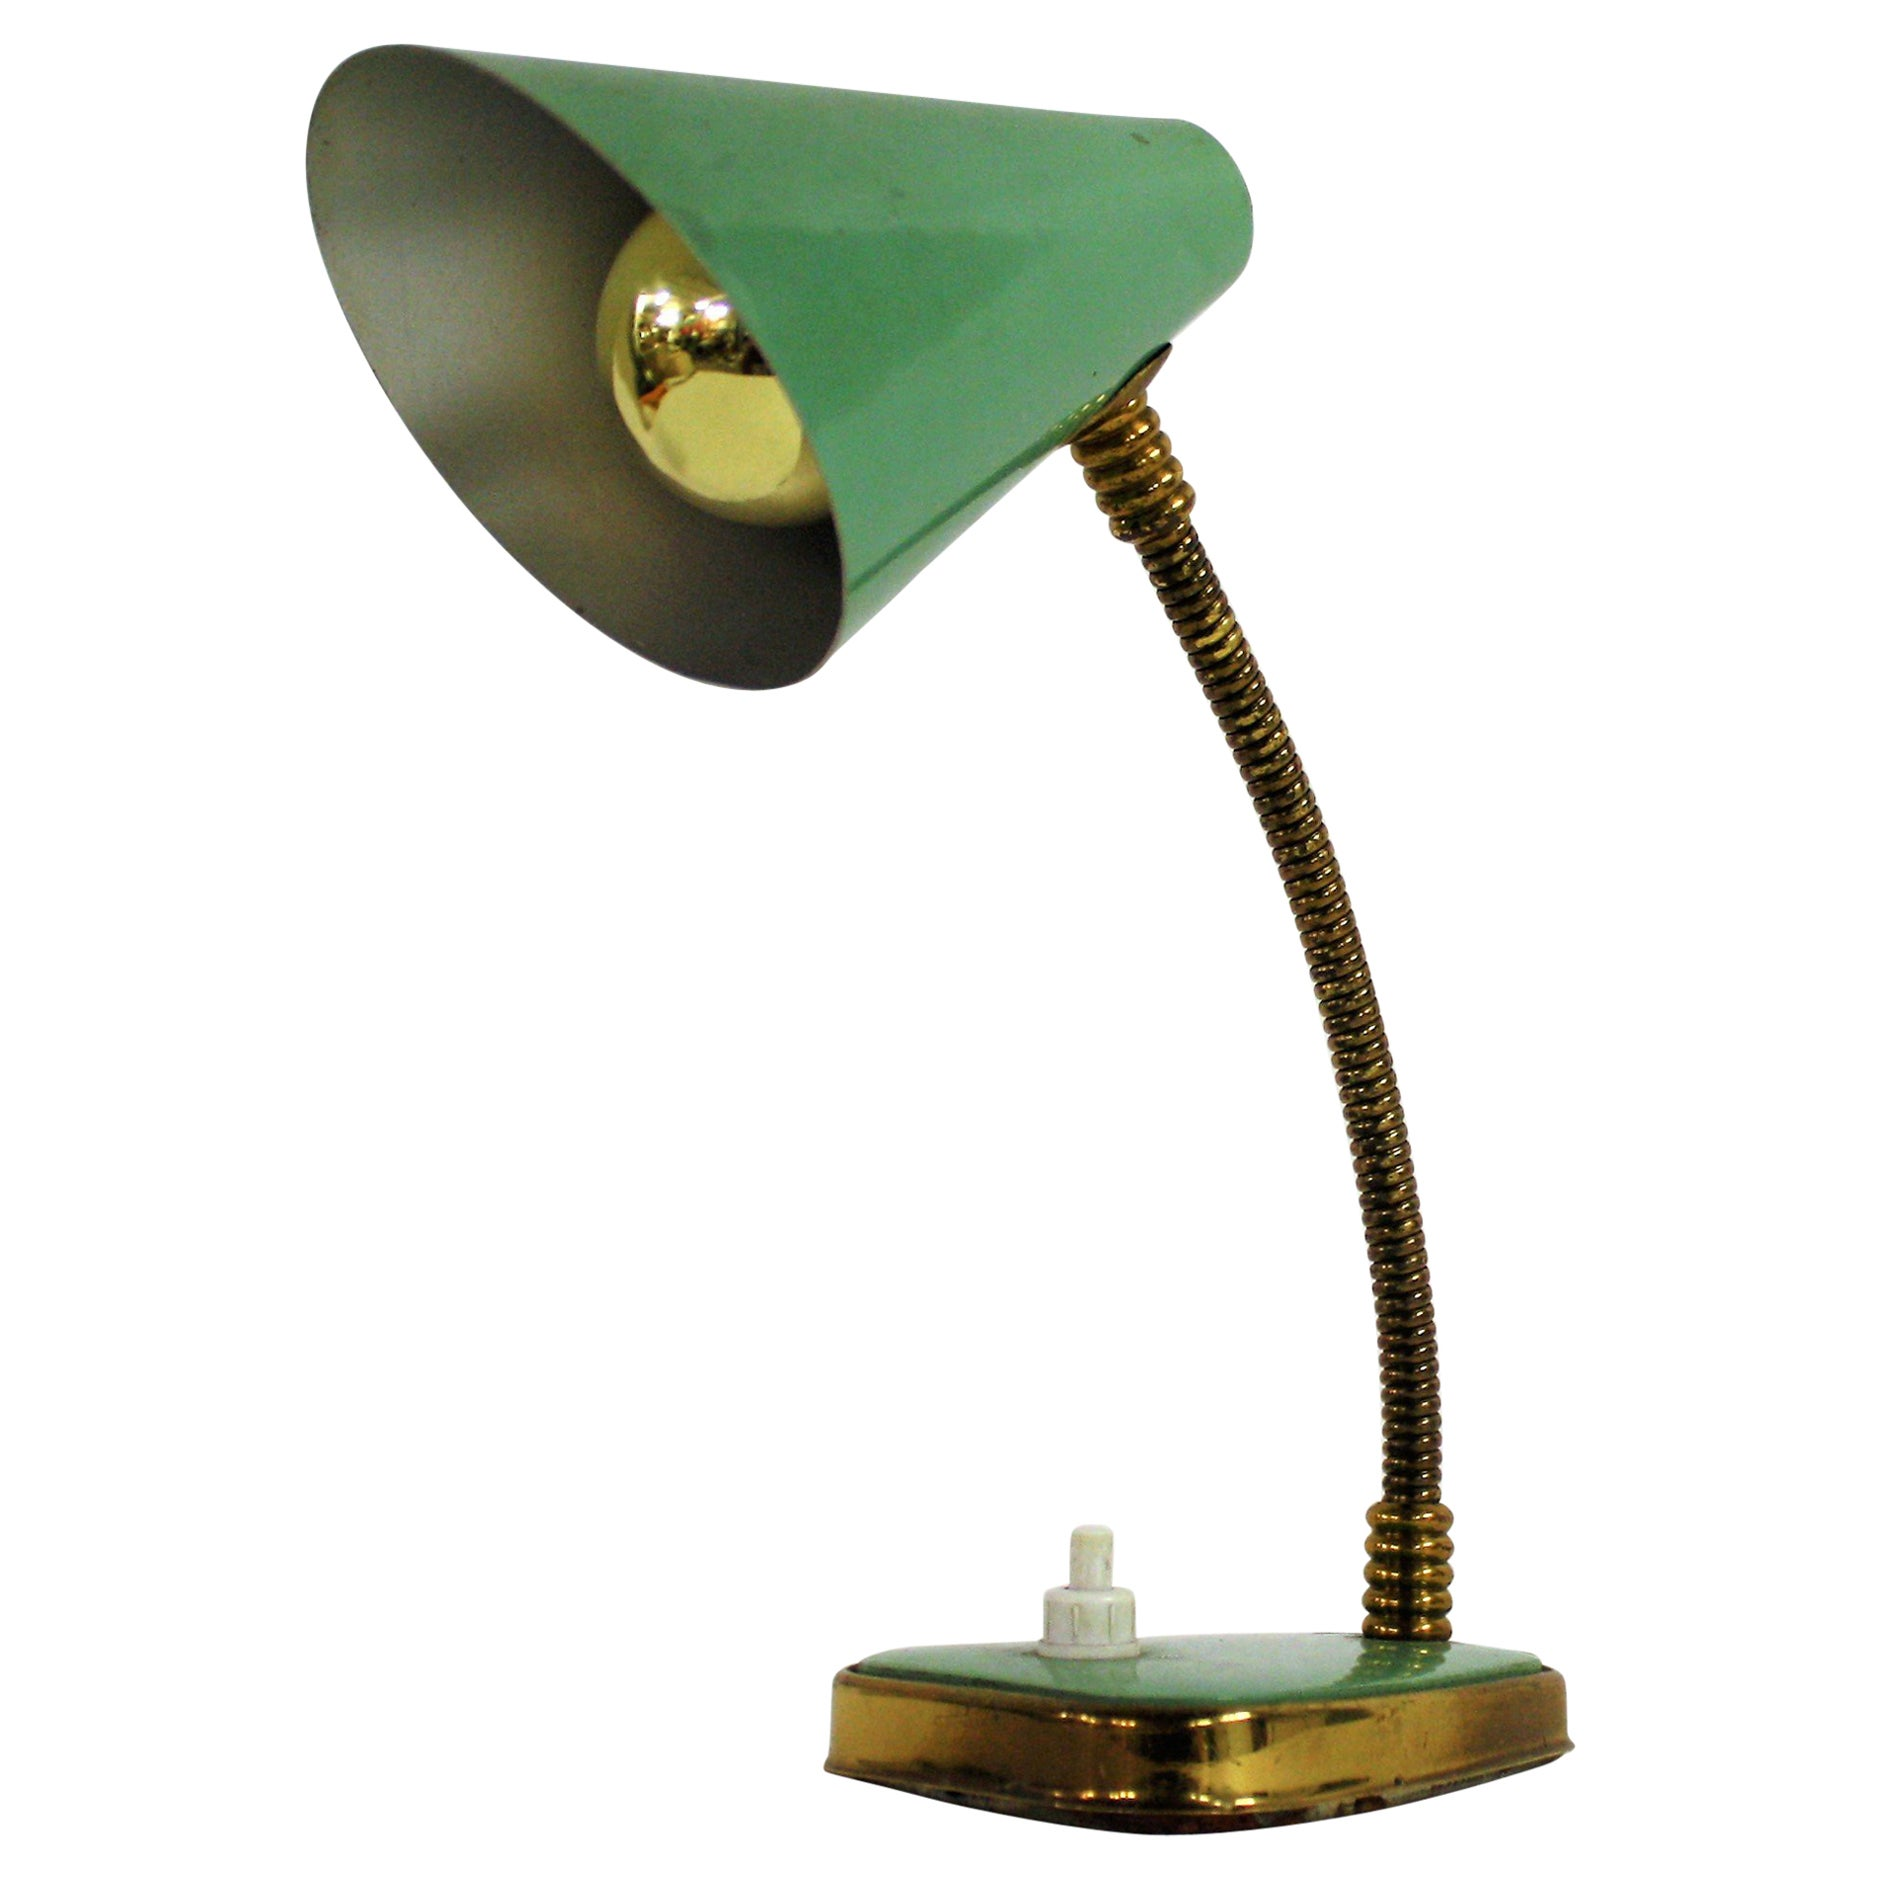 Desk Lamp Small Green Vintage Desk Lamp Made In Italy 1950s